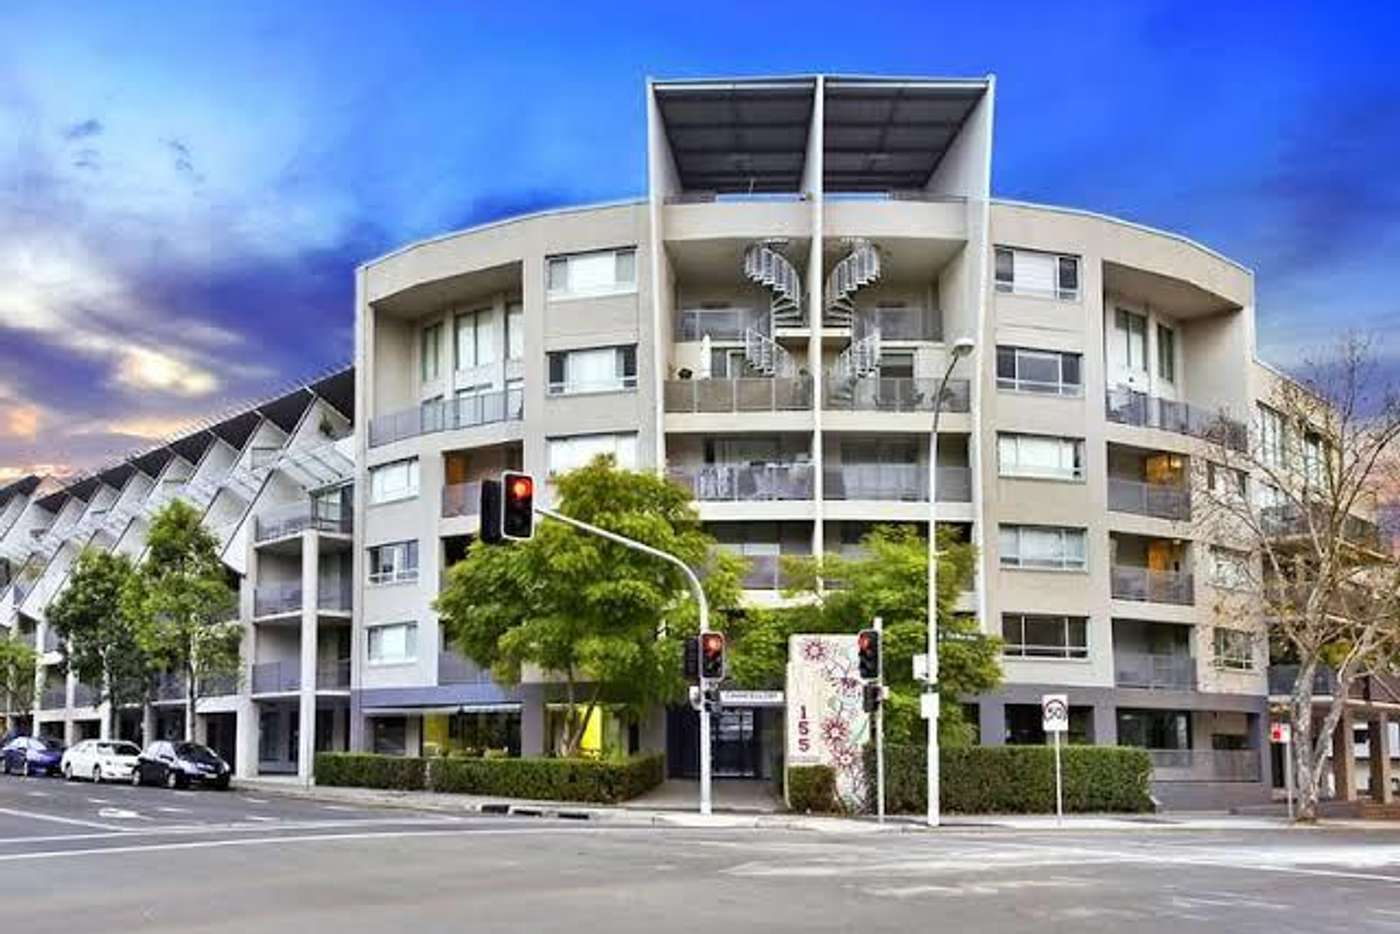 Main view of Homely apartment listing, 27/155 Missenden Road, Newtown NSW 2042